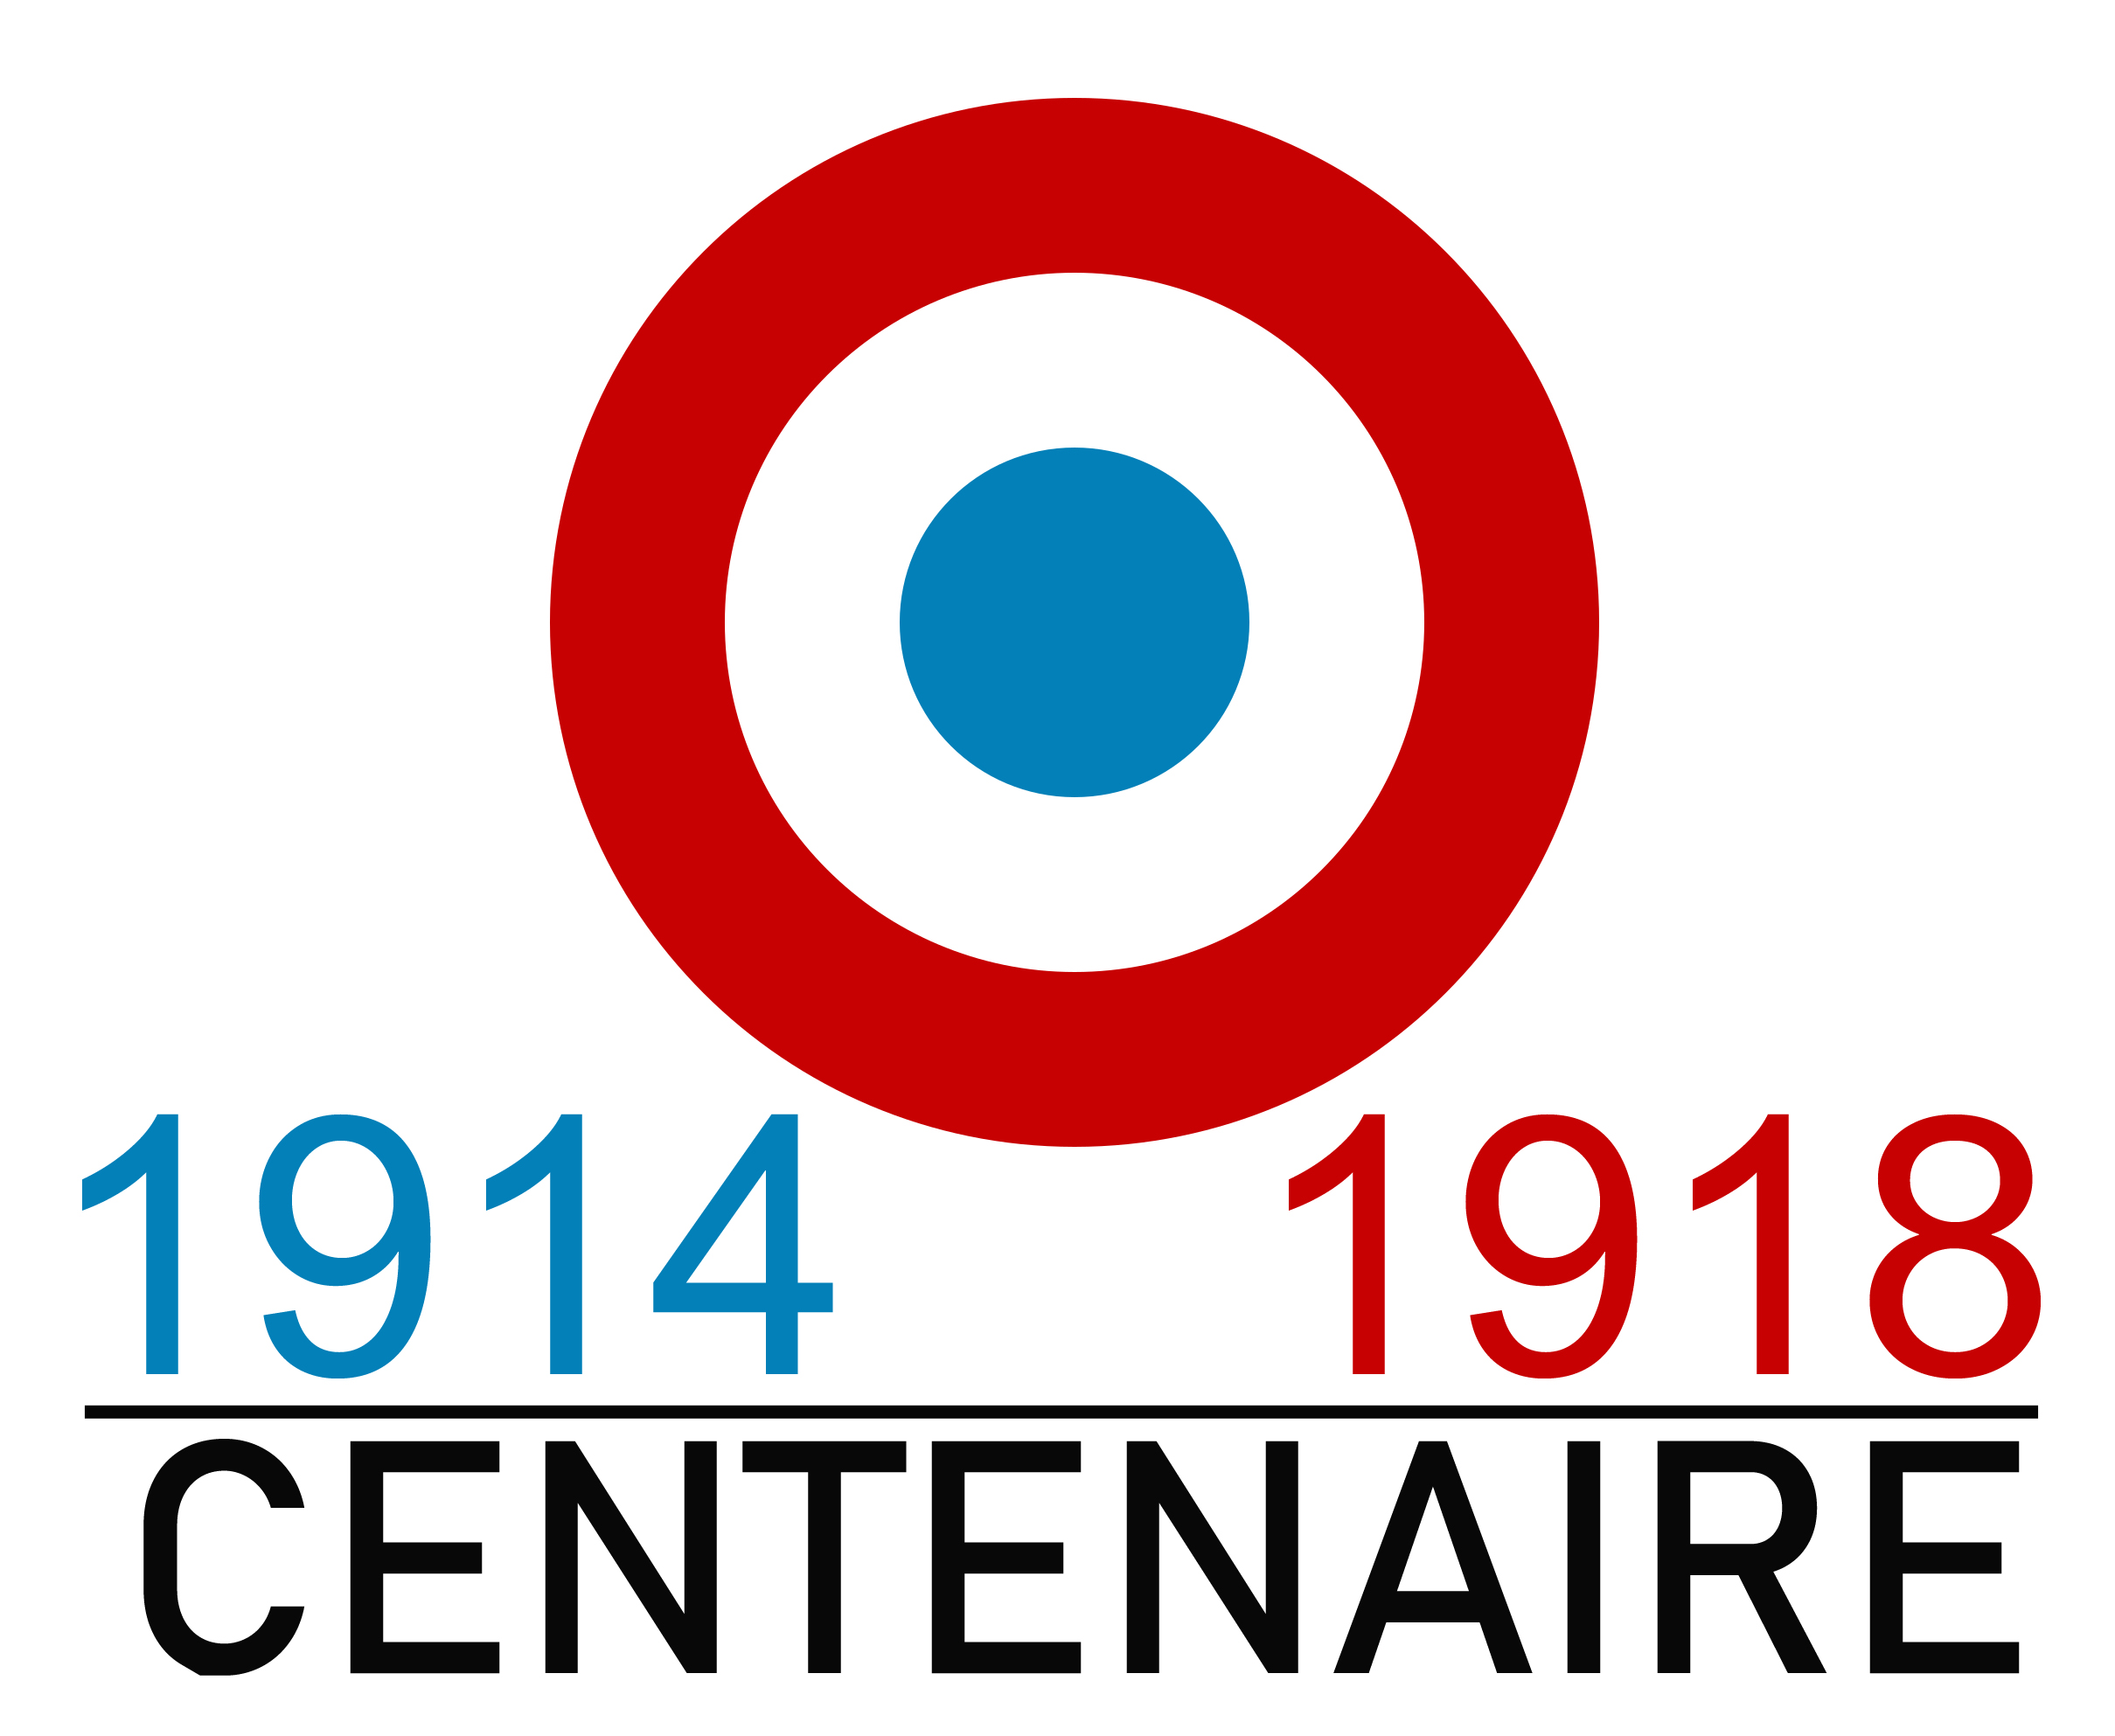 logo centenaire modifie 1